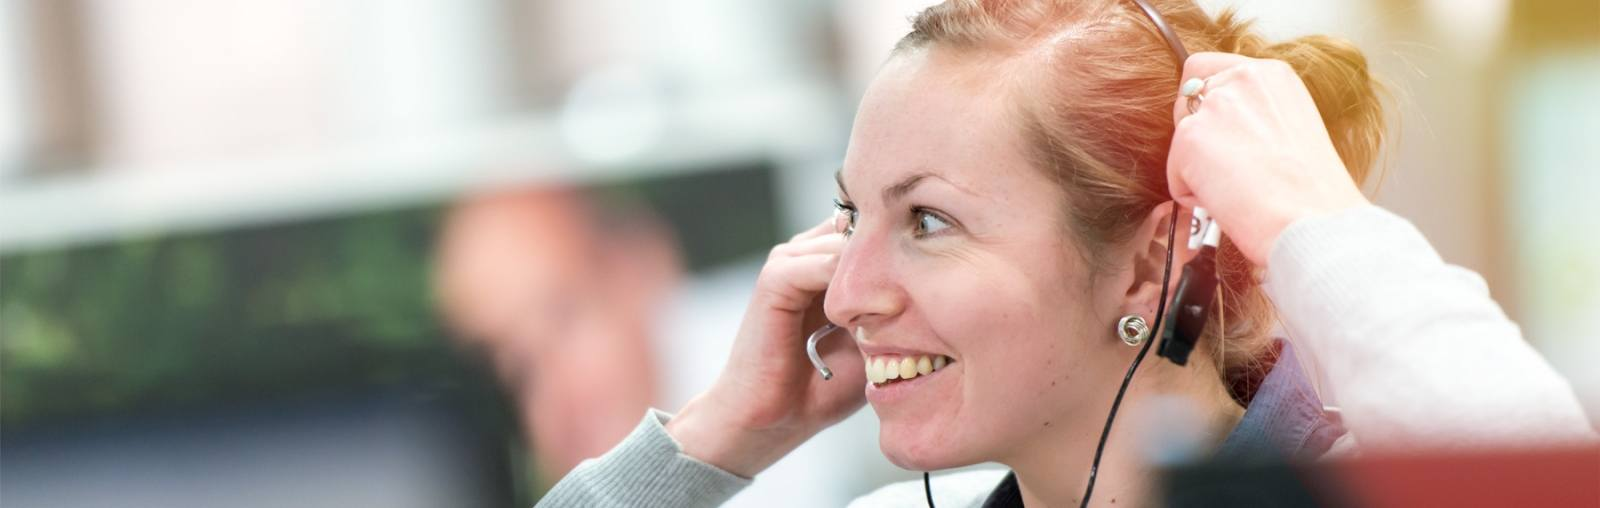 Lady smiling wearing a telephone headset